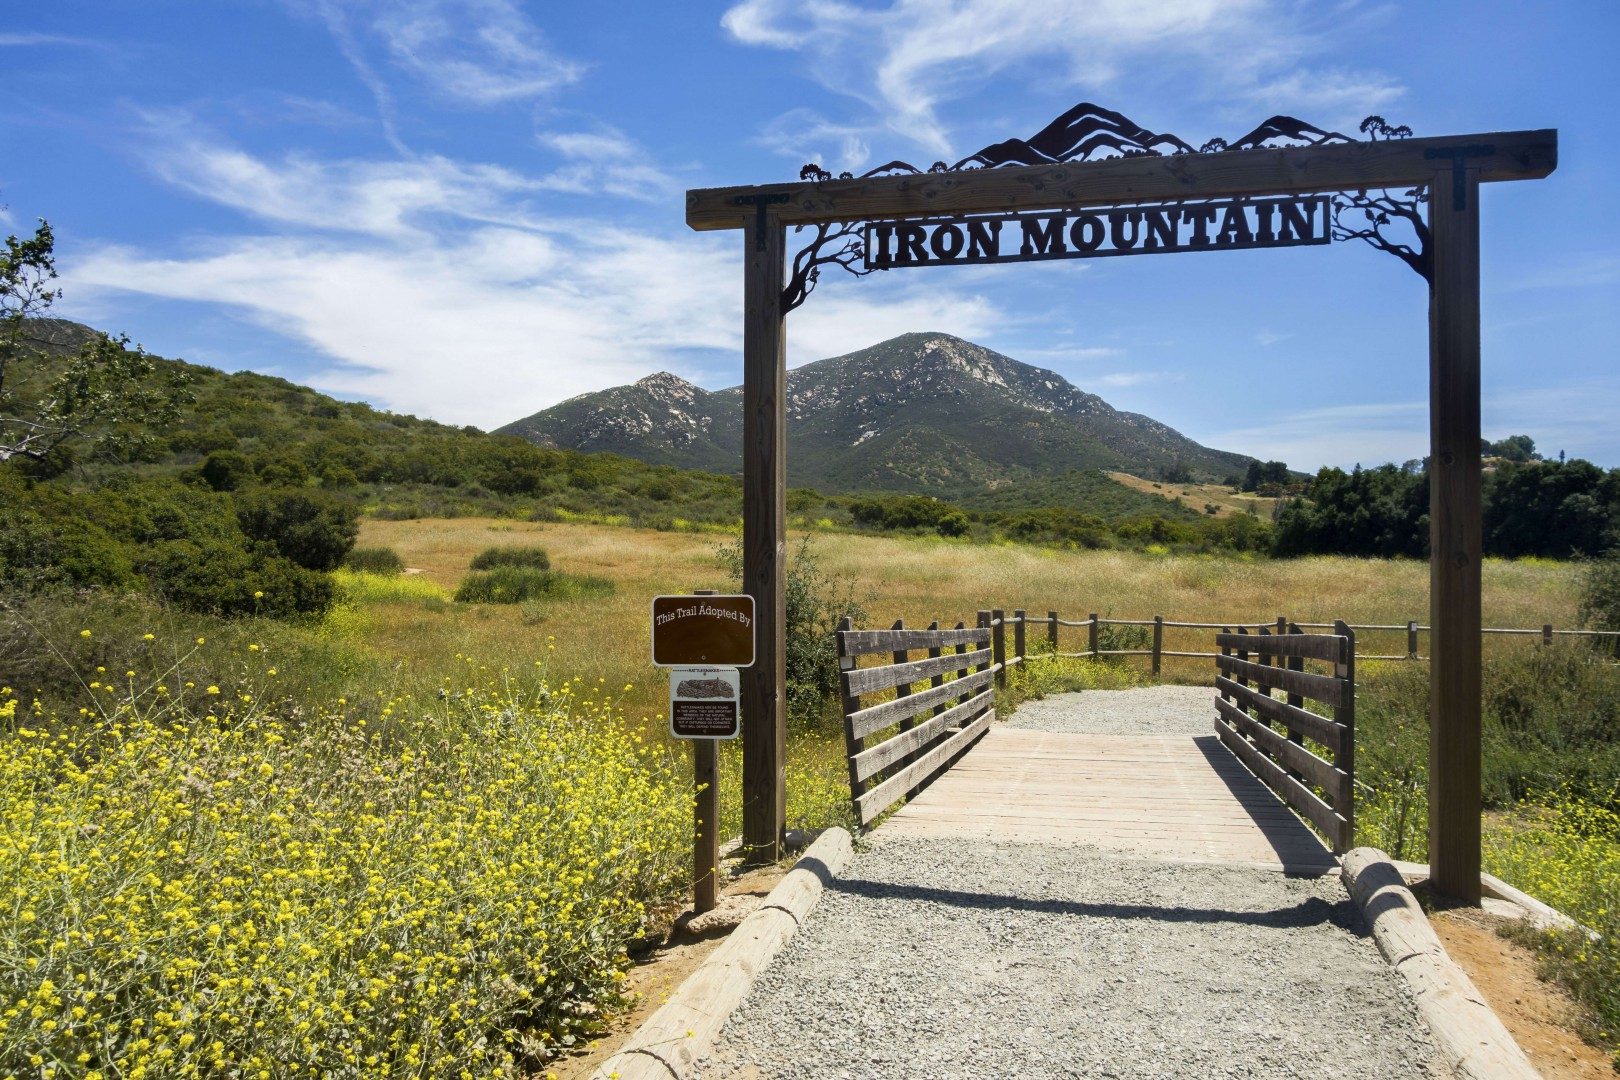 Iron Mountain Trail located in Poway County California